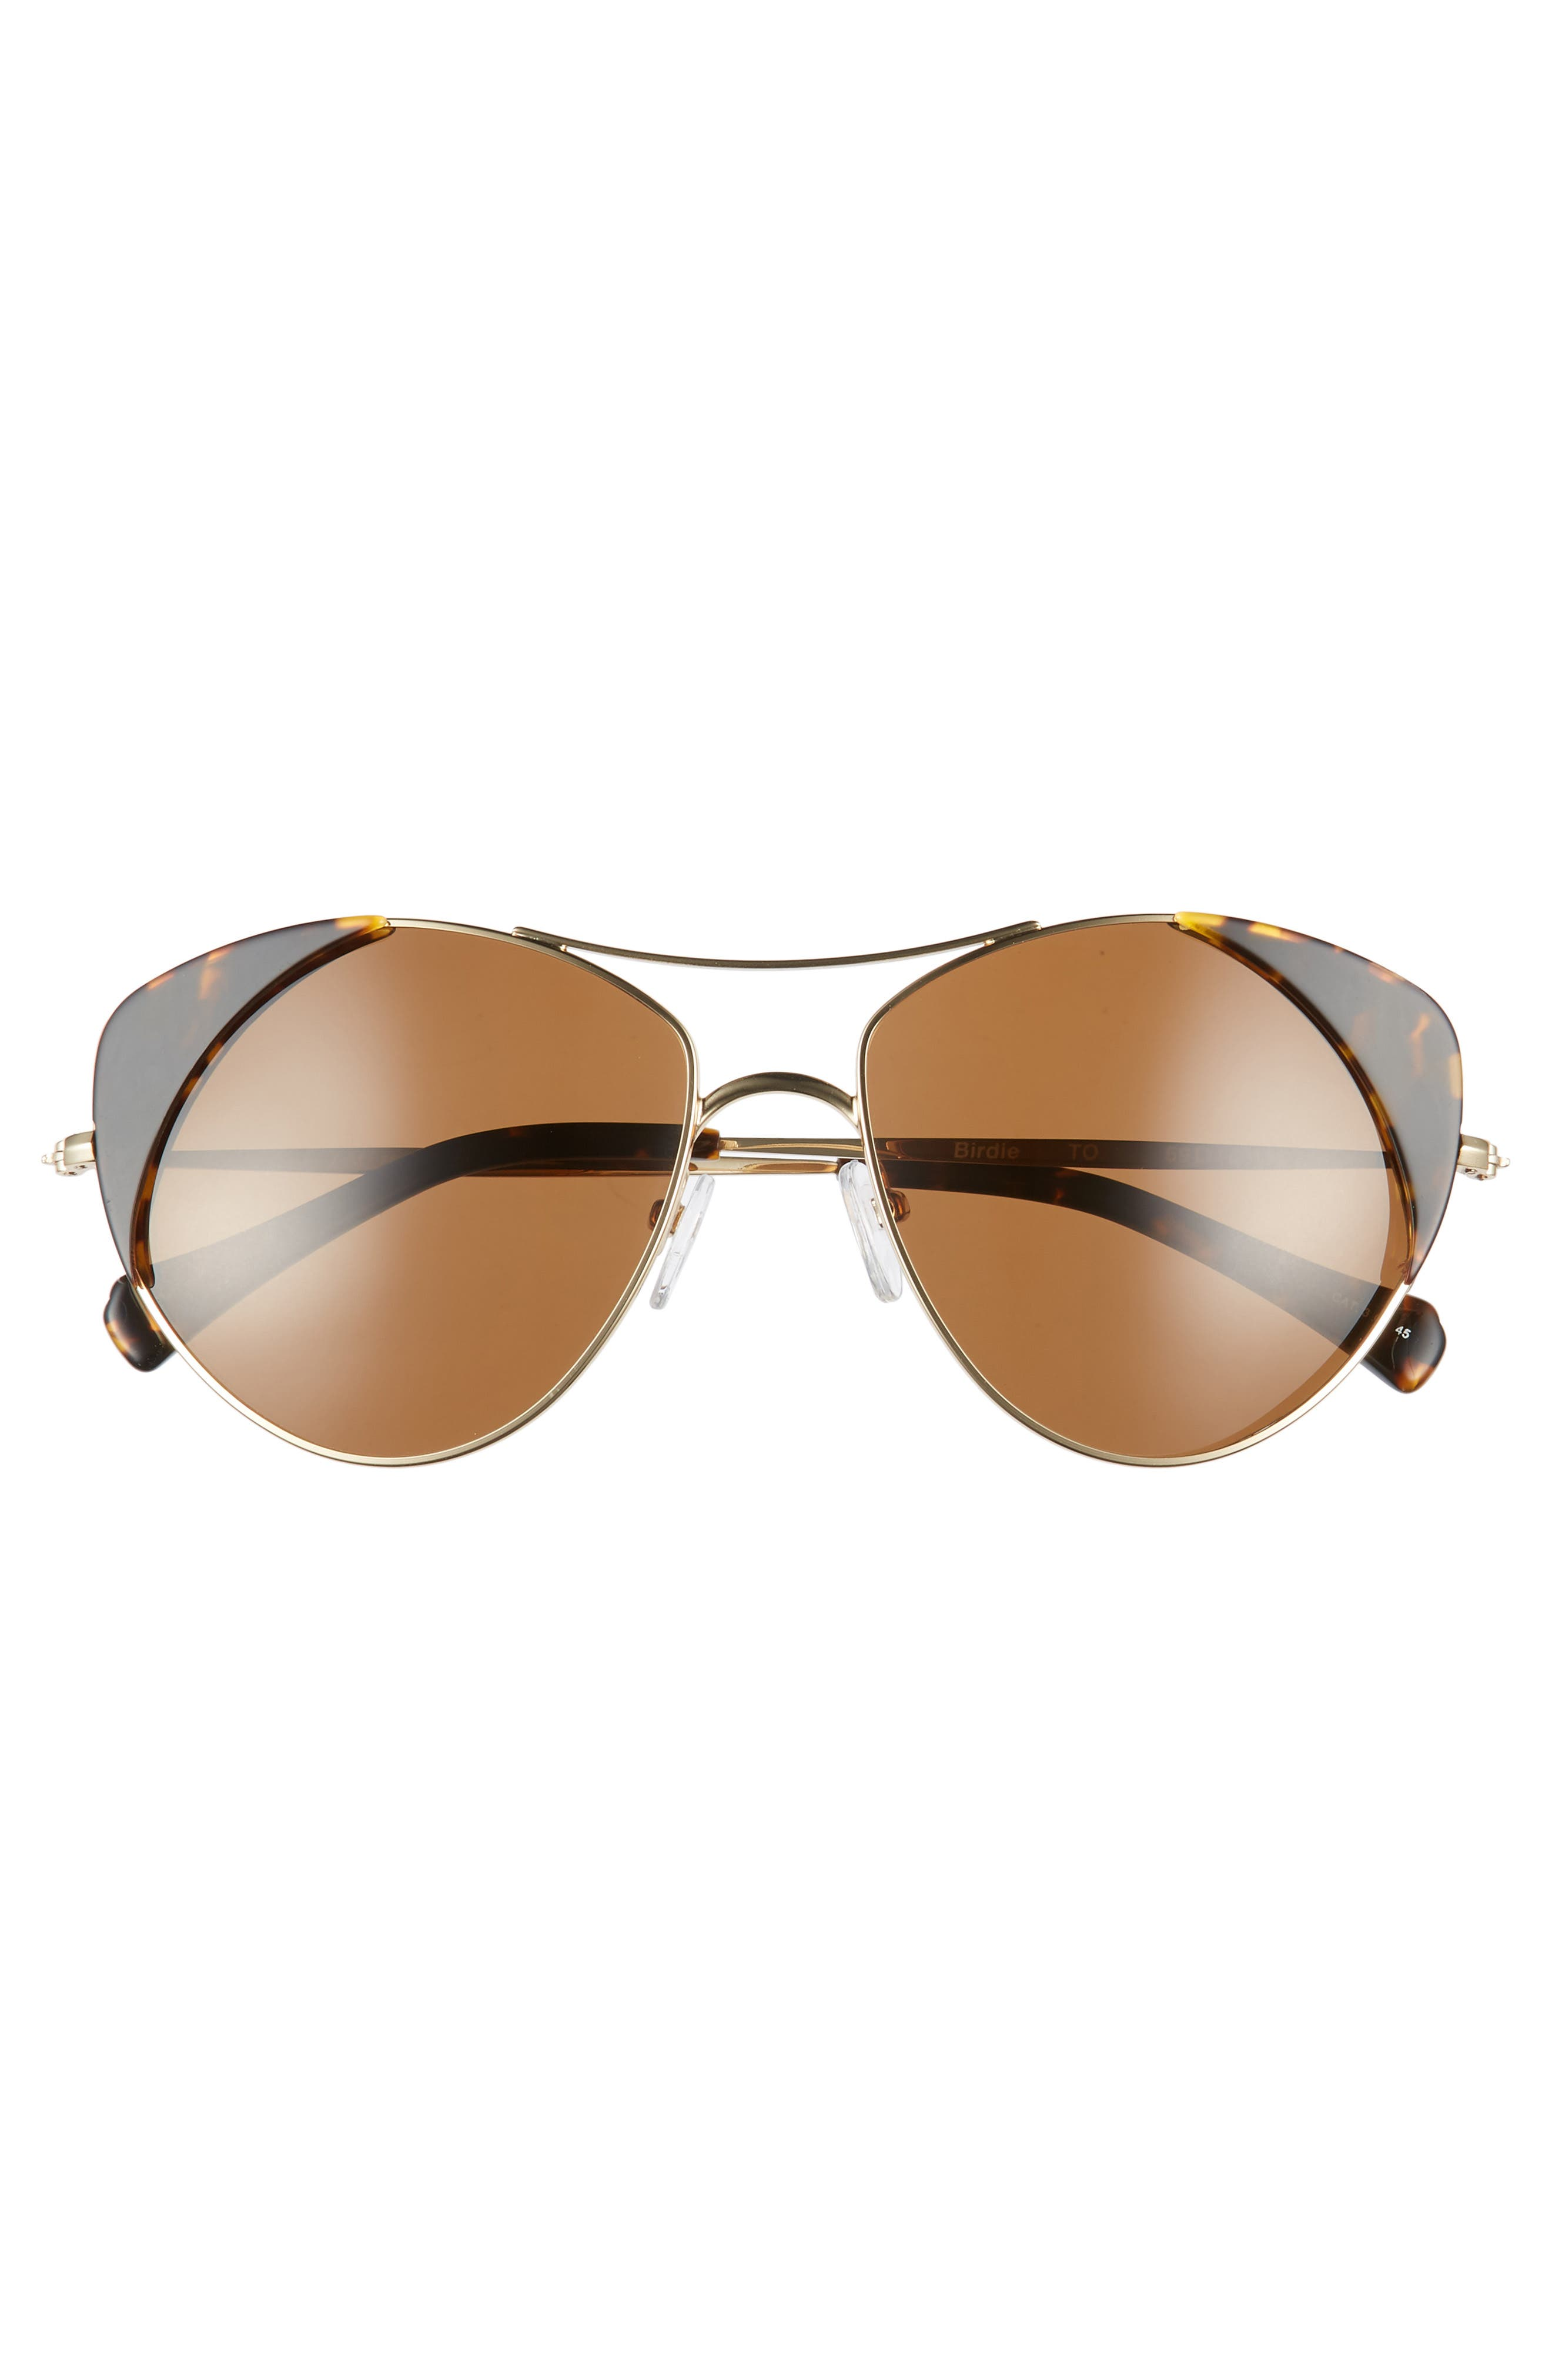 Birdie 59mm Polarized Aviator Sunglasses,                             Alternate thumbnail 3, color,                             Tortoise Polar/ Brown